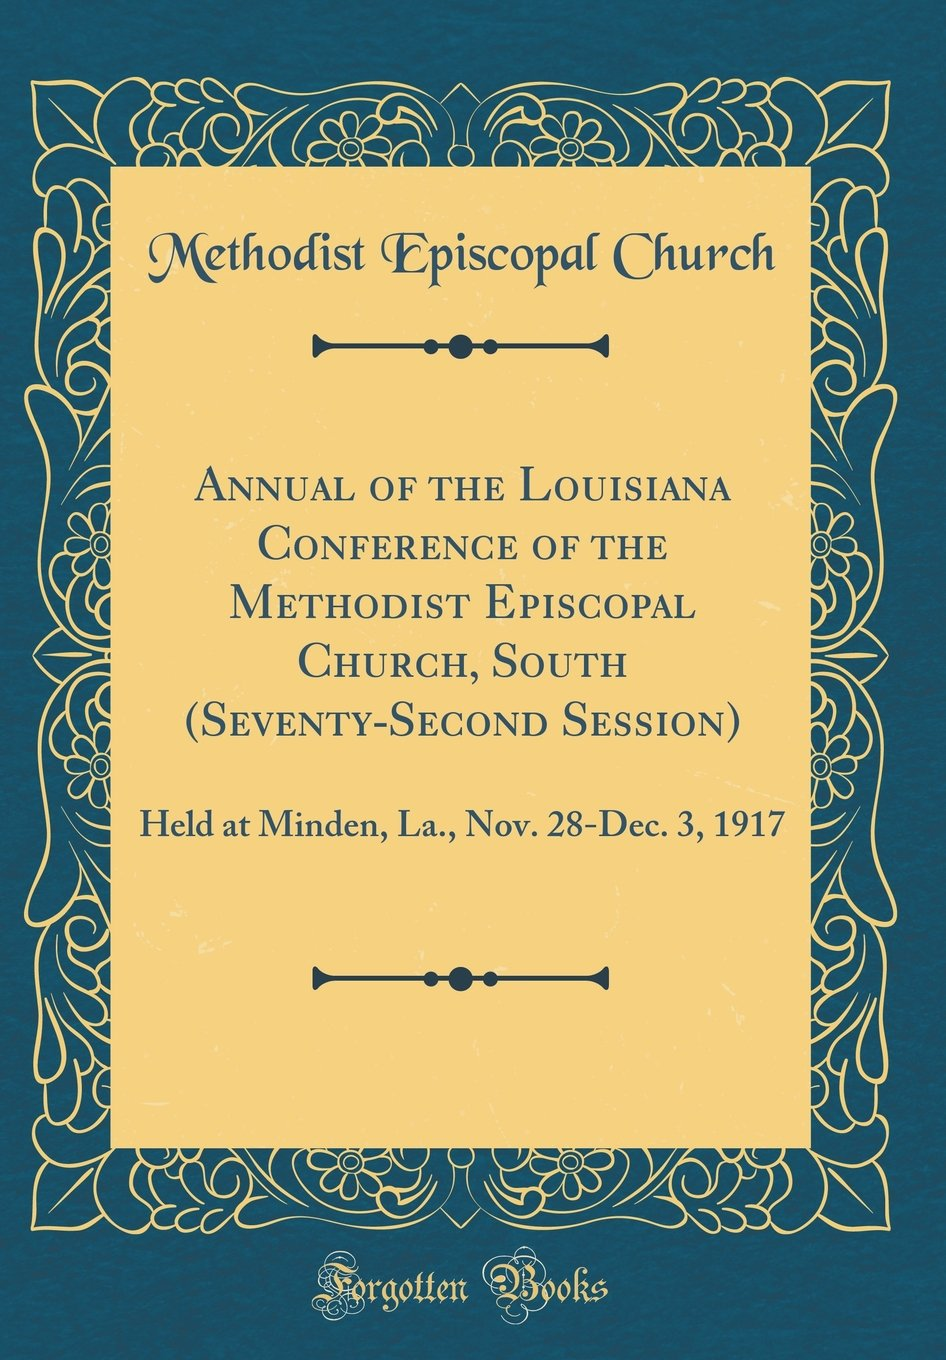 Annual of the Louisiana Conference of the Methodist Episcopal Church, South (Seventy-Second Session): Held at Minden, La., Nov. 28-Dec. 3, 1917 (Classic Reprint) pdf epub